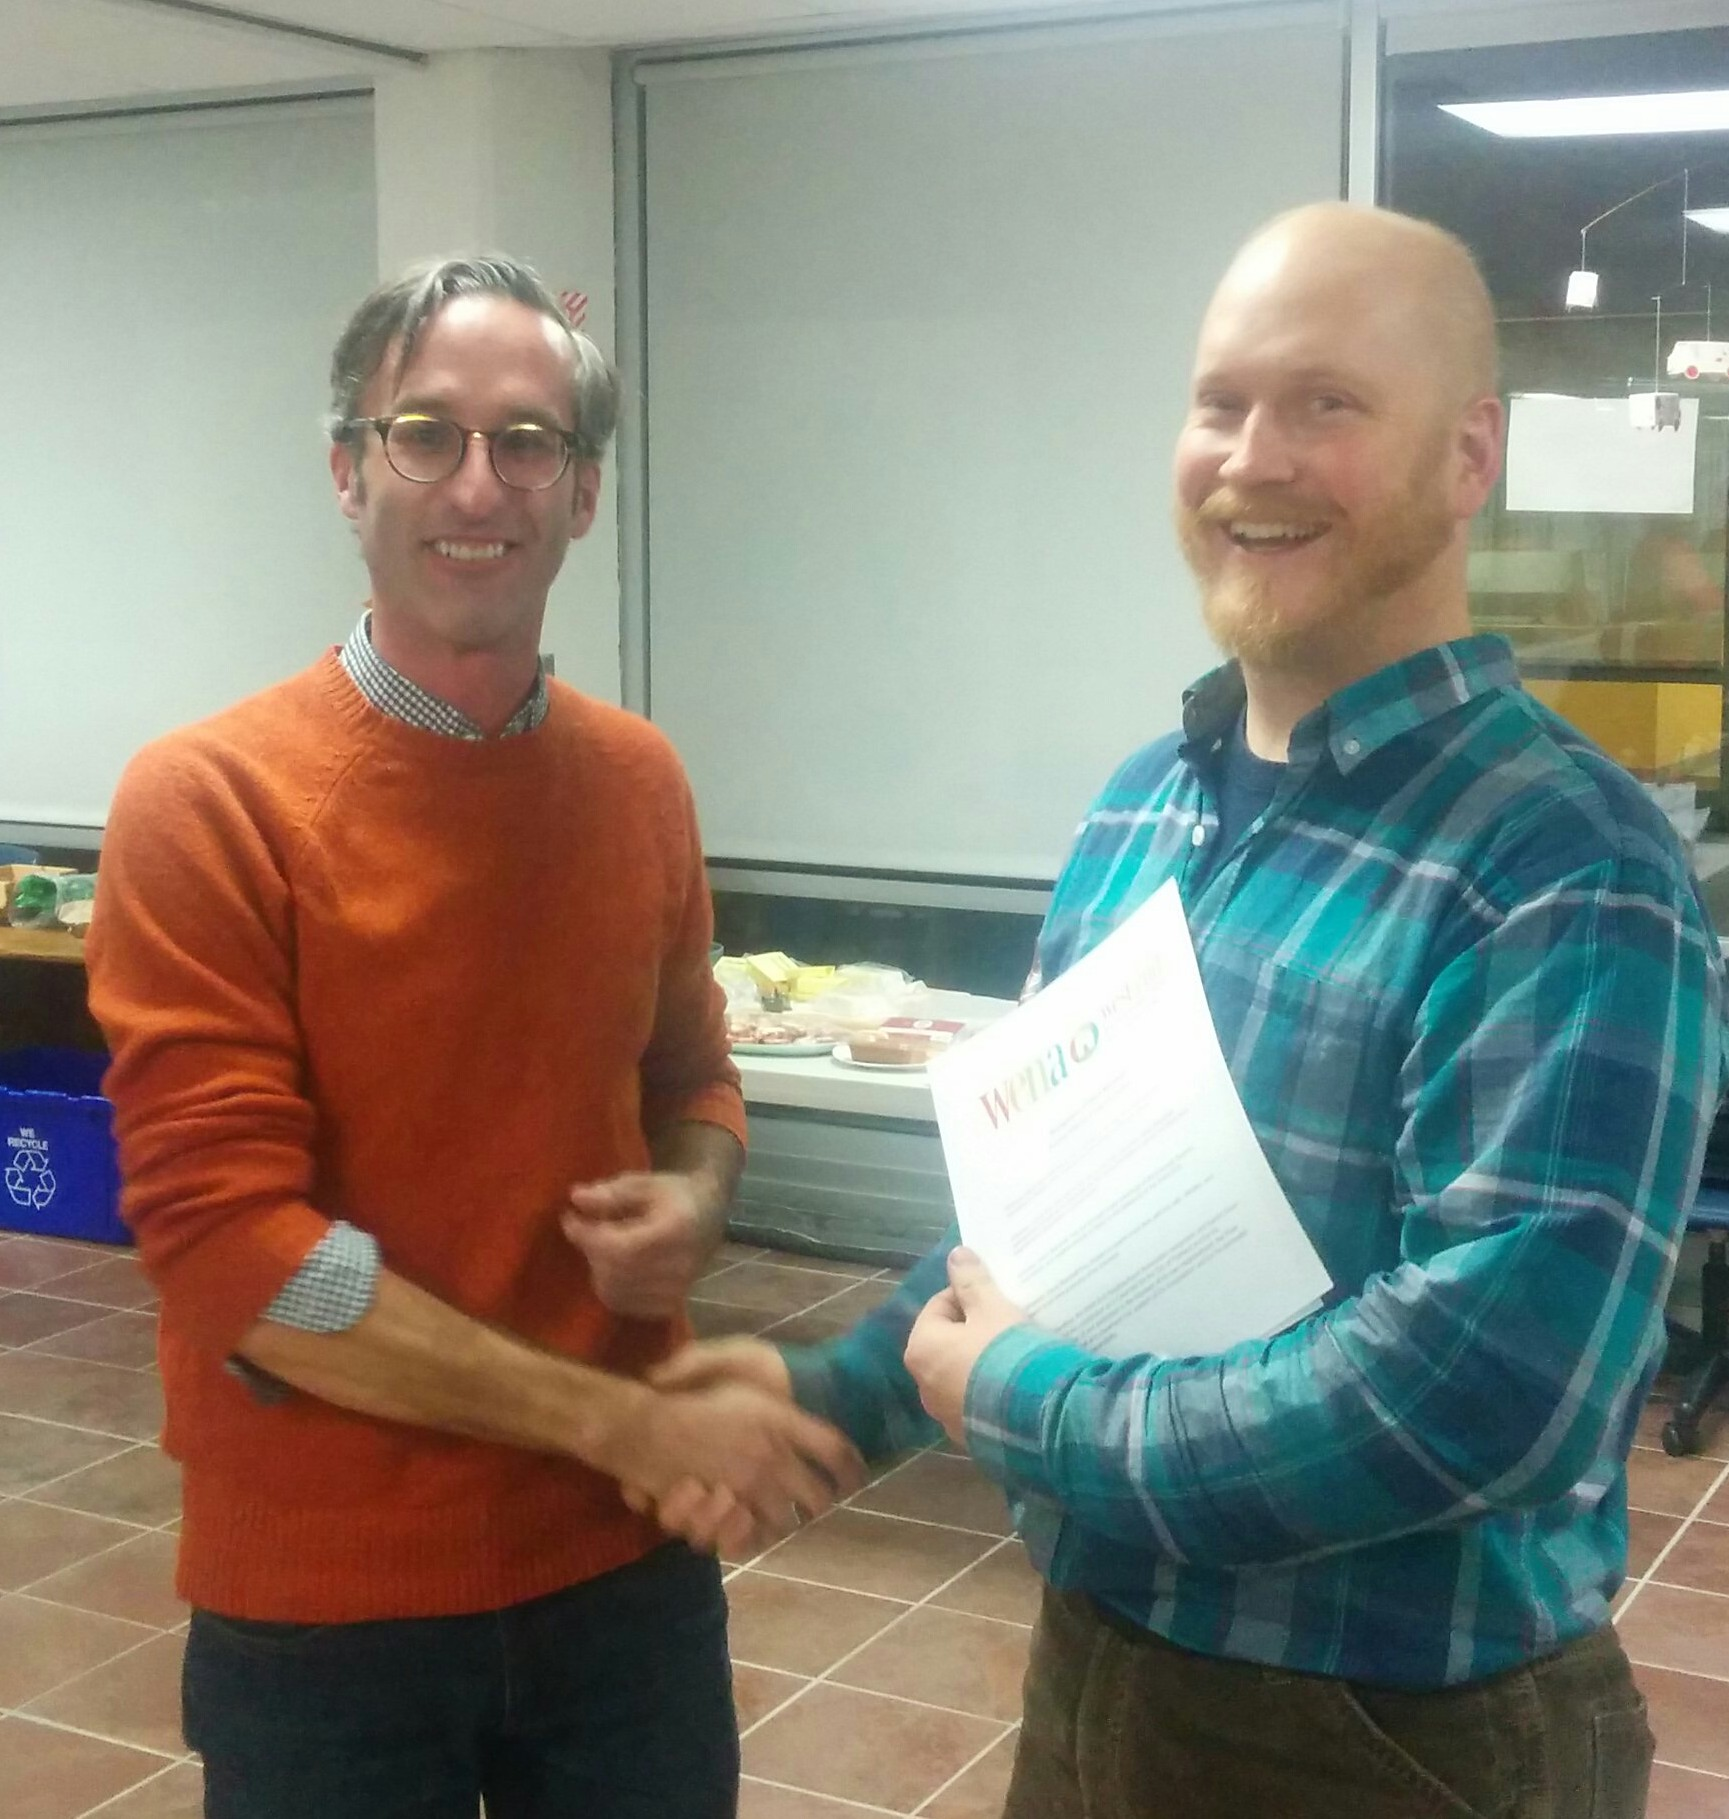 WENA President Ian Jacob handing Dave Marshall a letter of recognition for his service as District 2 City Councilor.